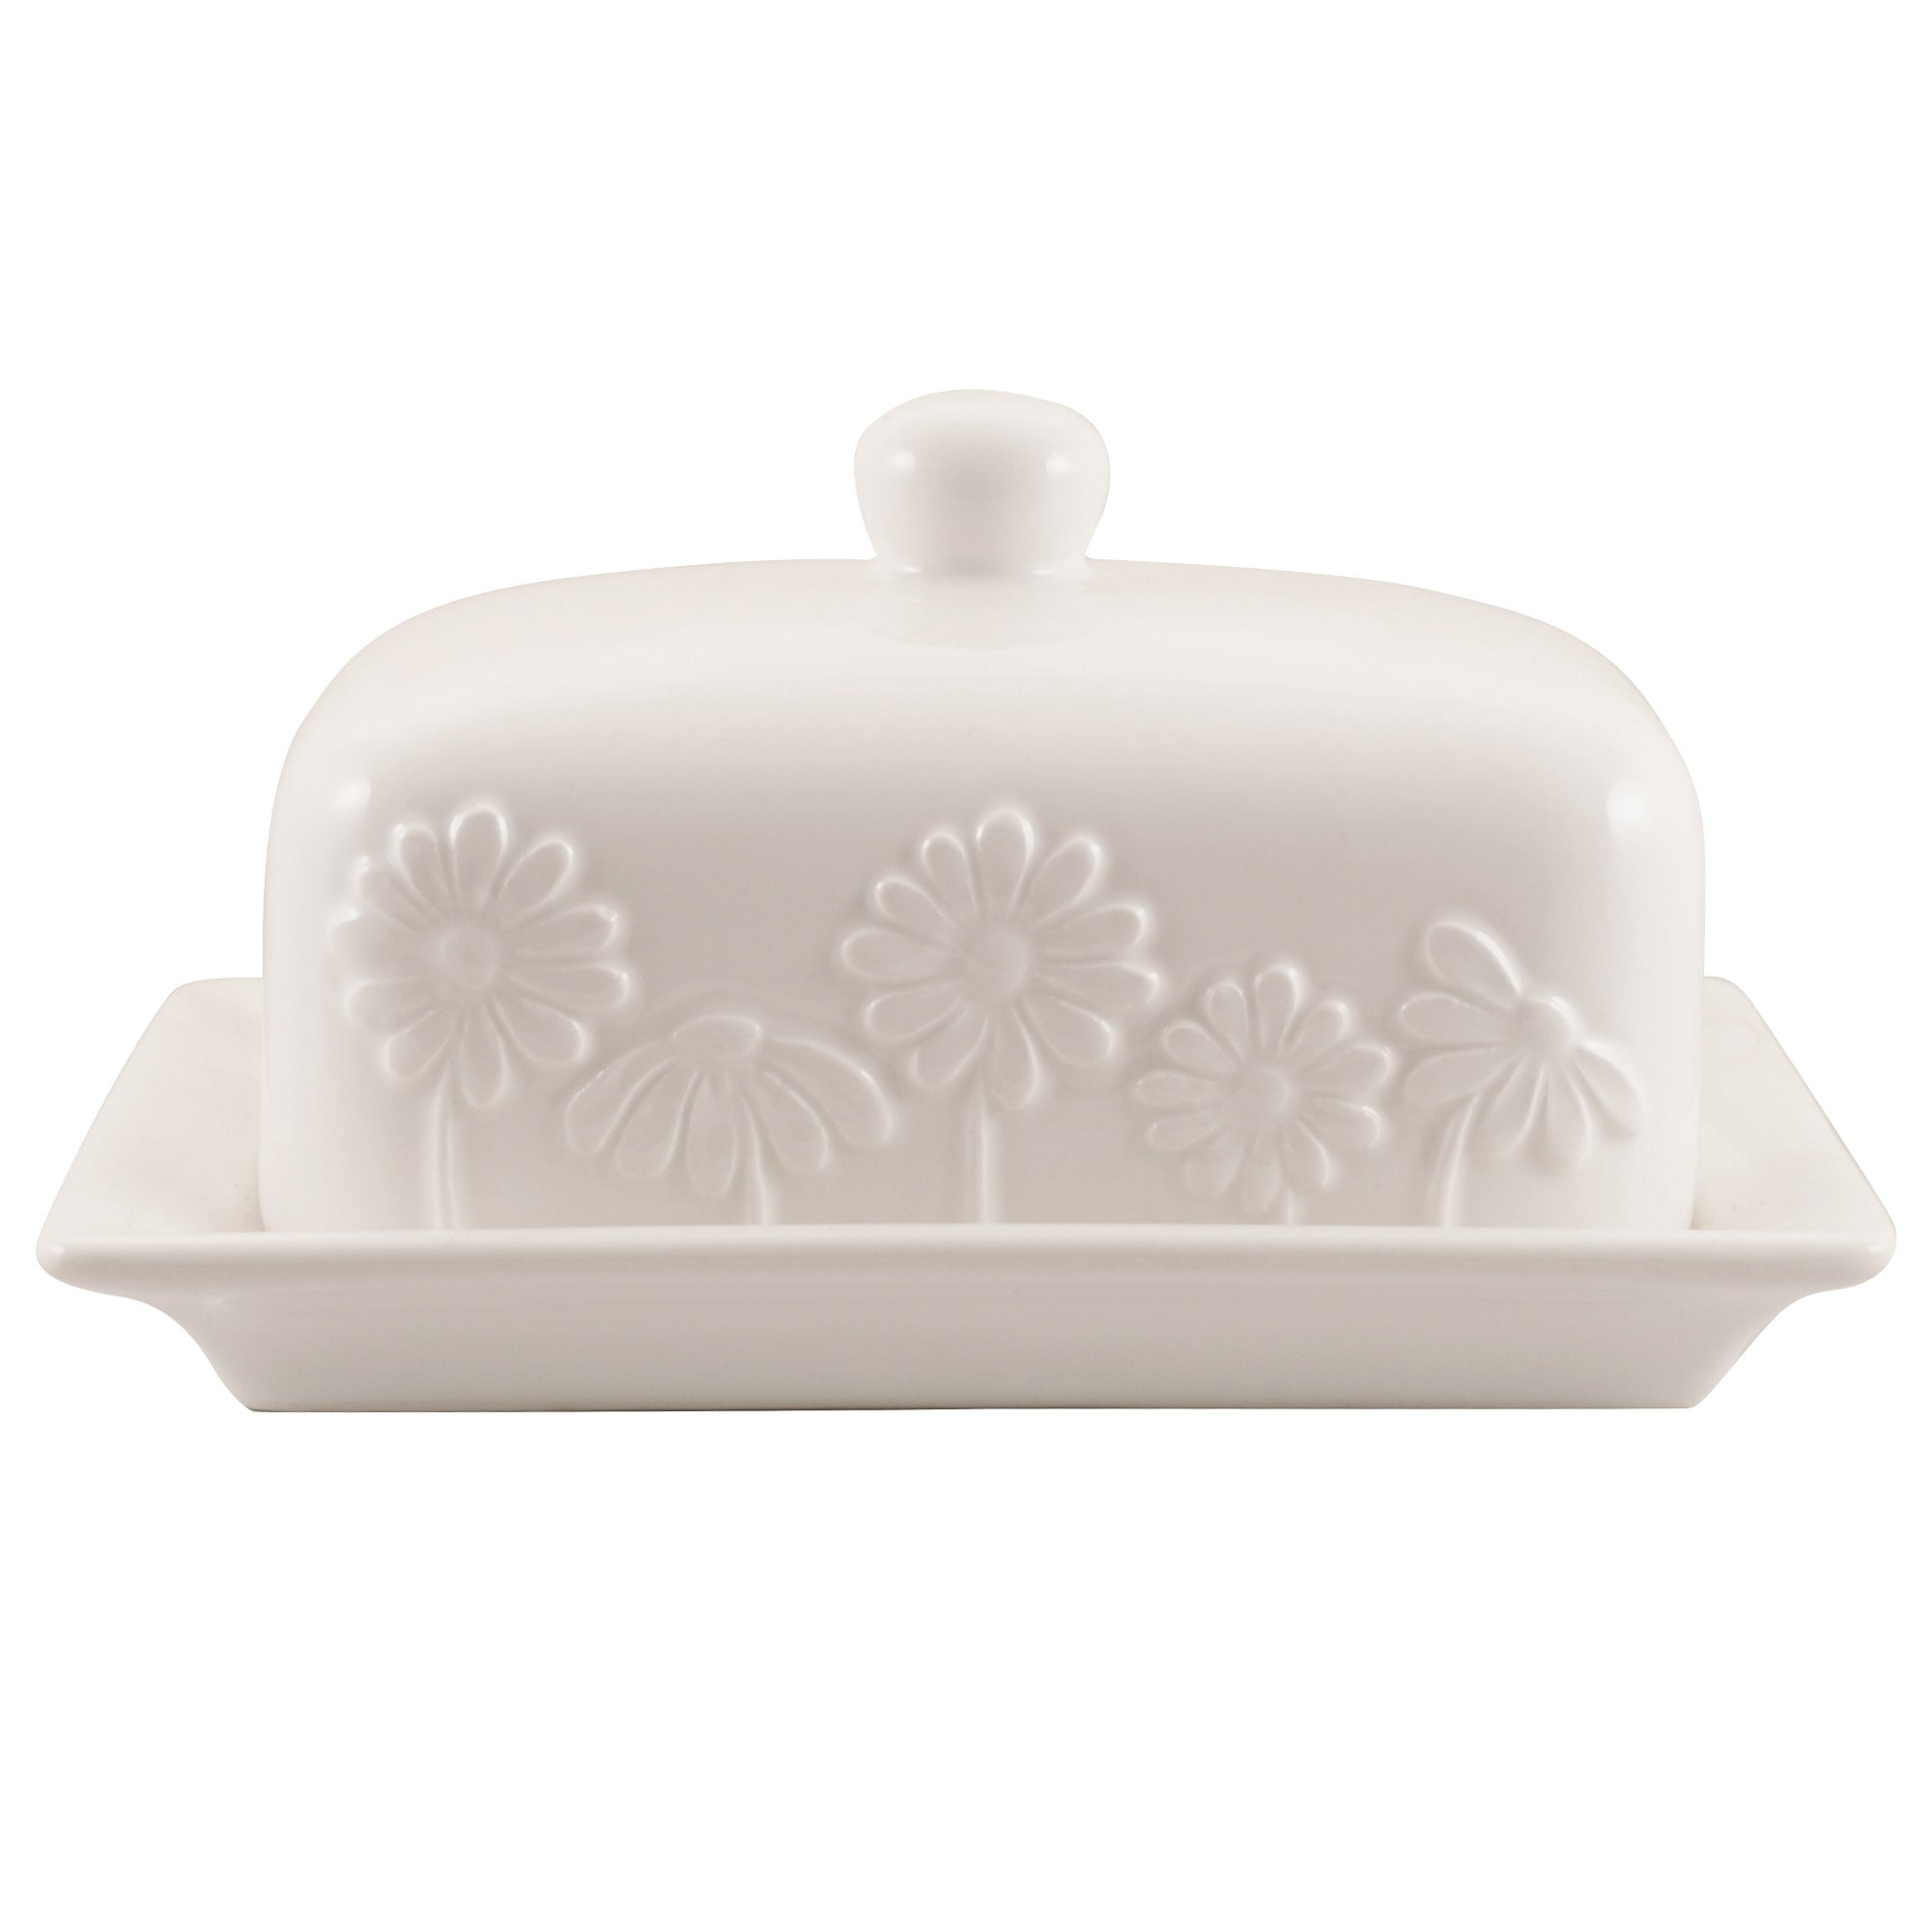 Daisy Collection Butter Dish